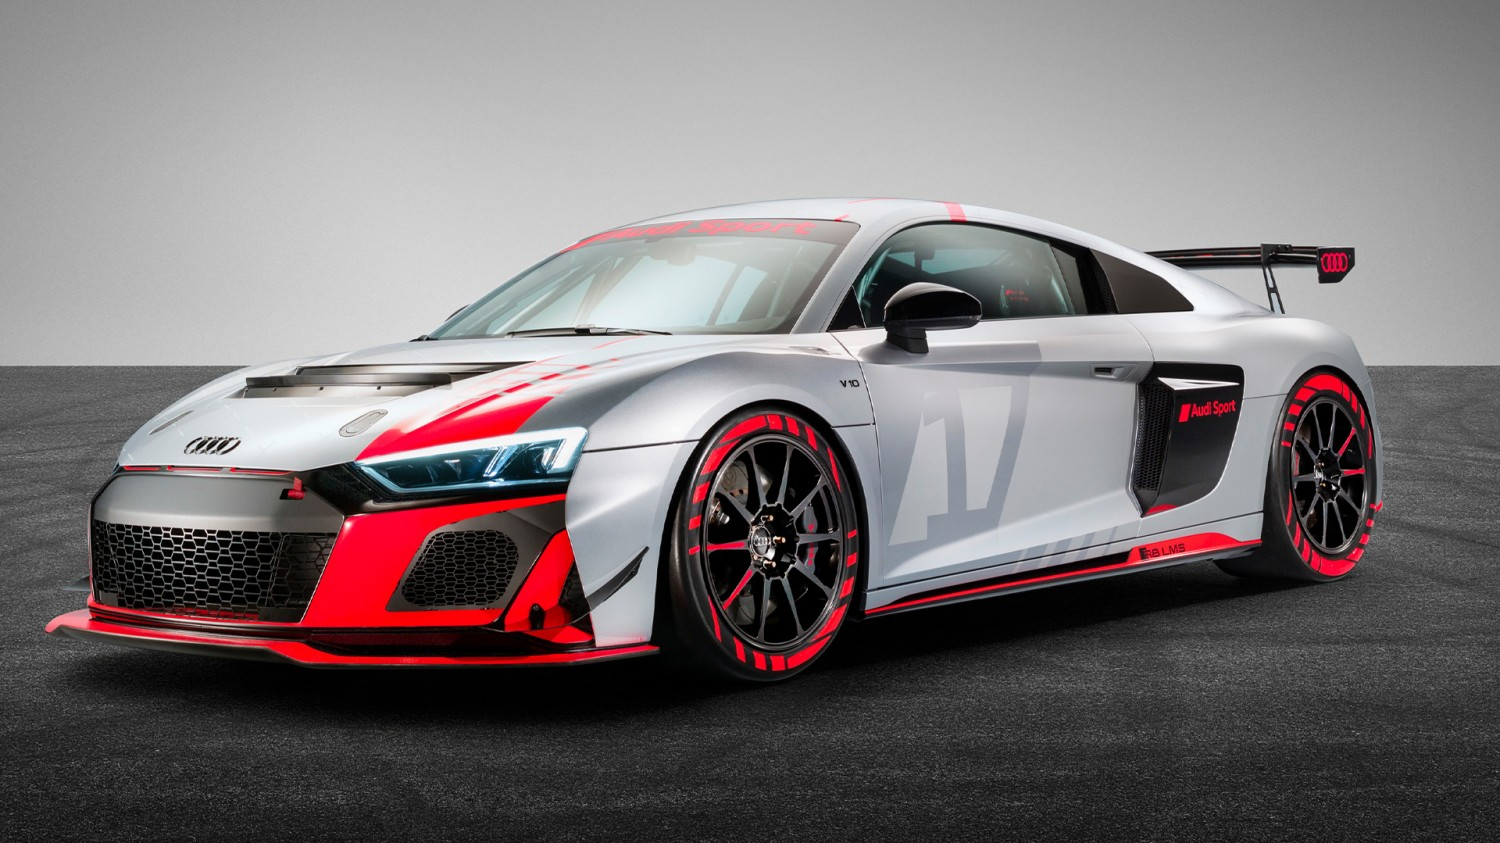 Audi R8 LMS GT4 Racecars Get Upgrades for 2020